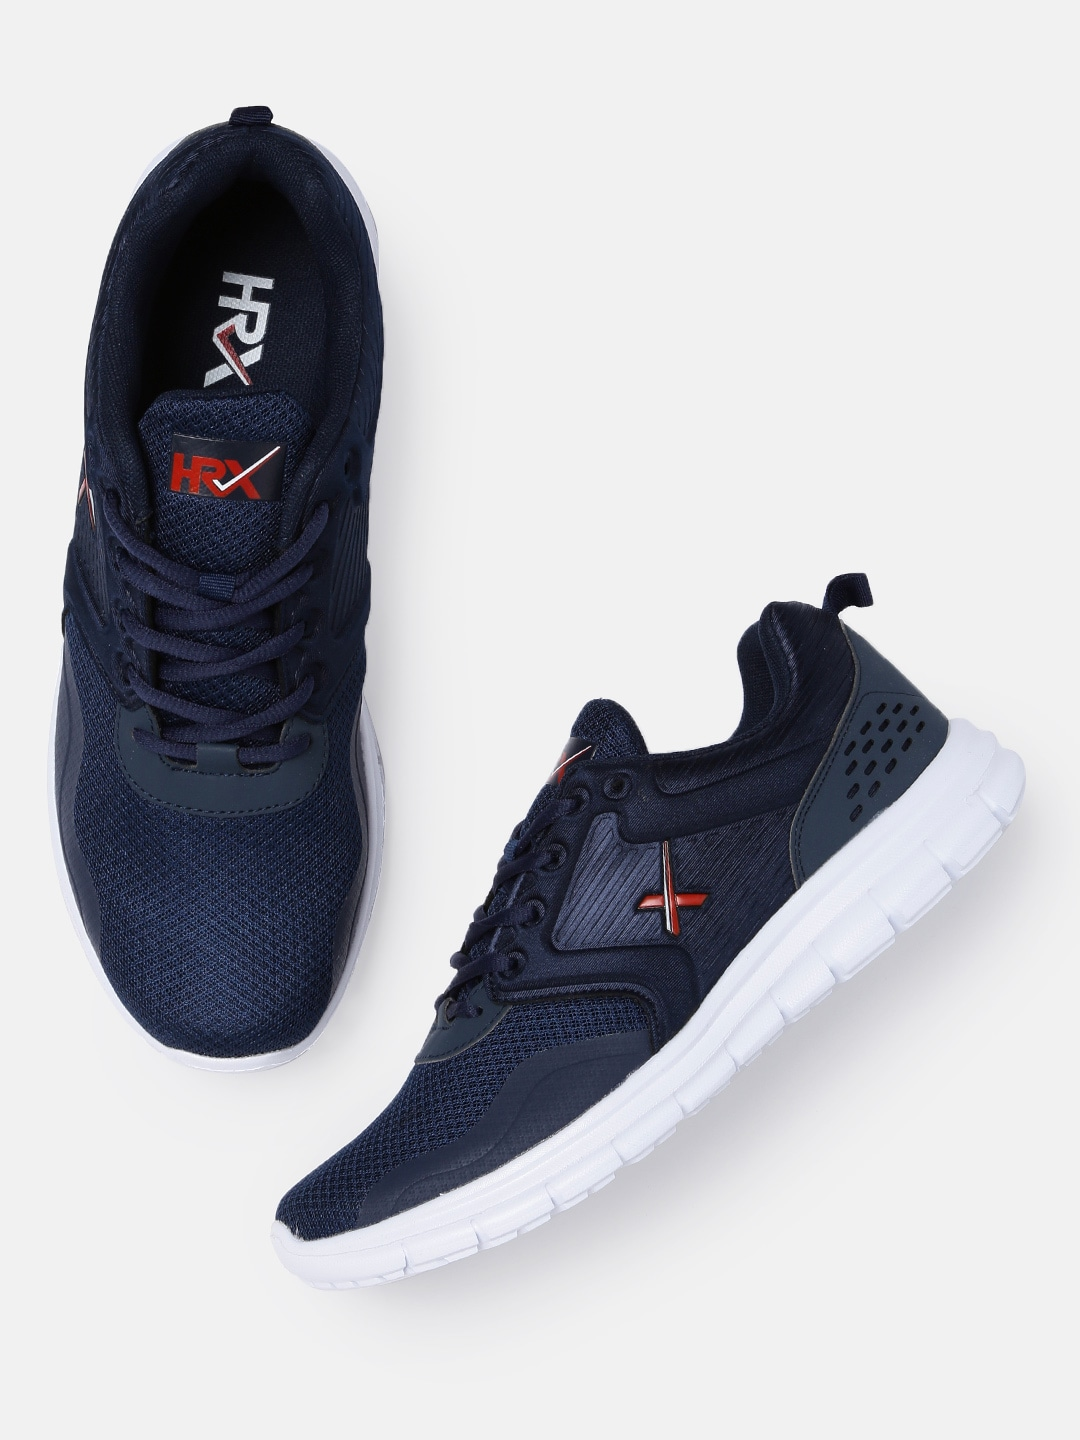 best sneakers dfb00 998a7 HRX Store - Buy HRX Clothing   Accessories Online in India